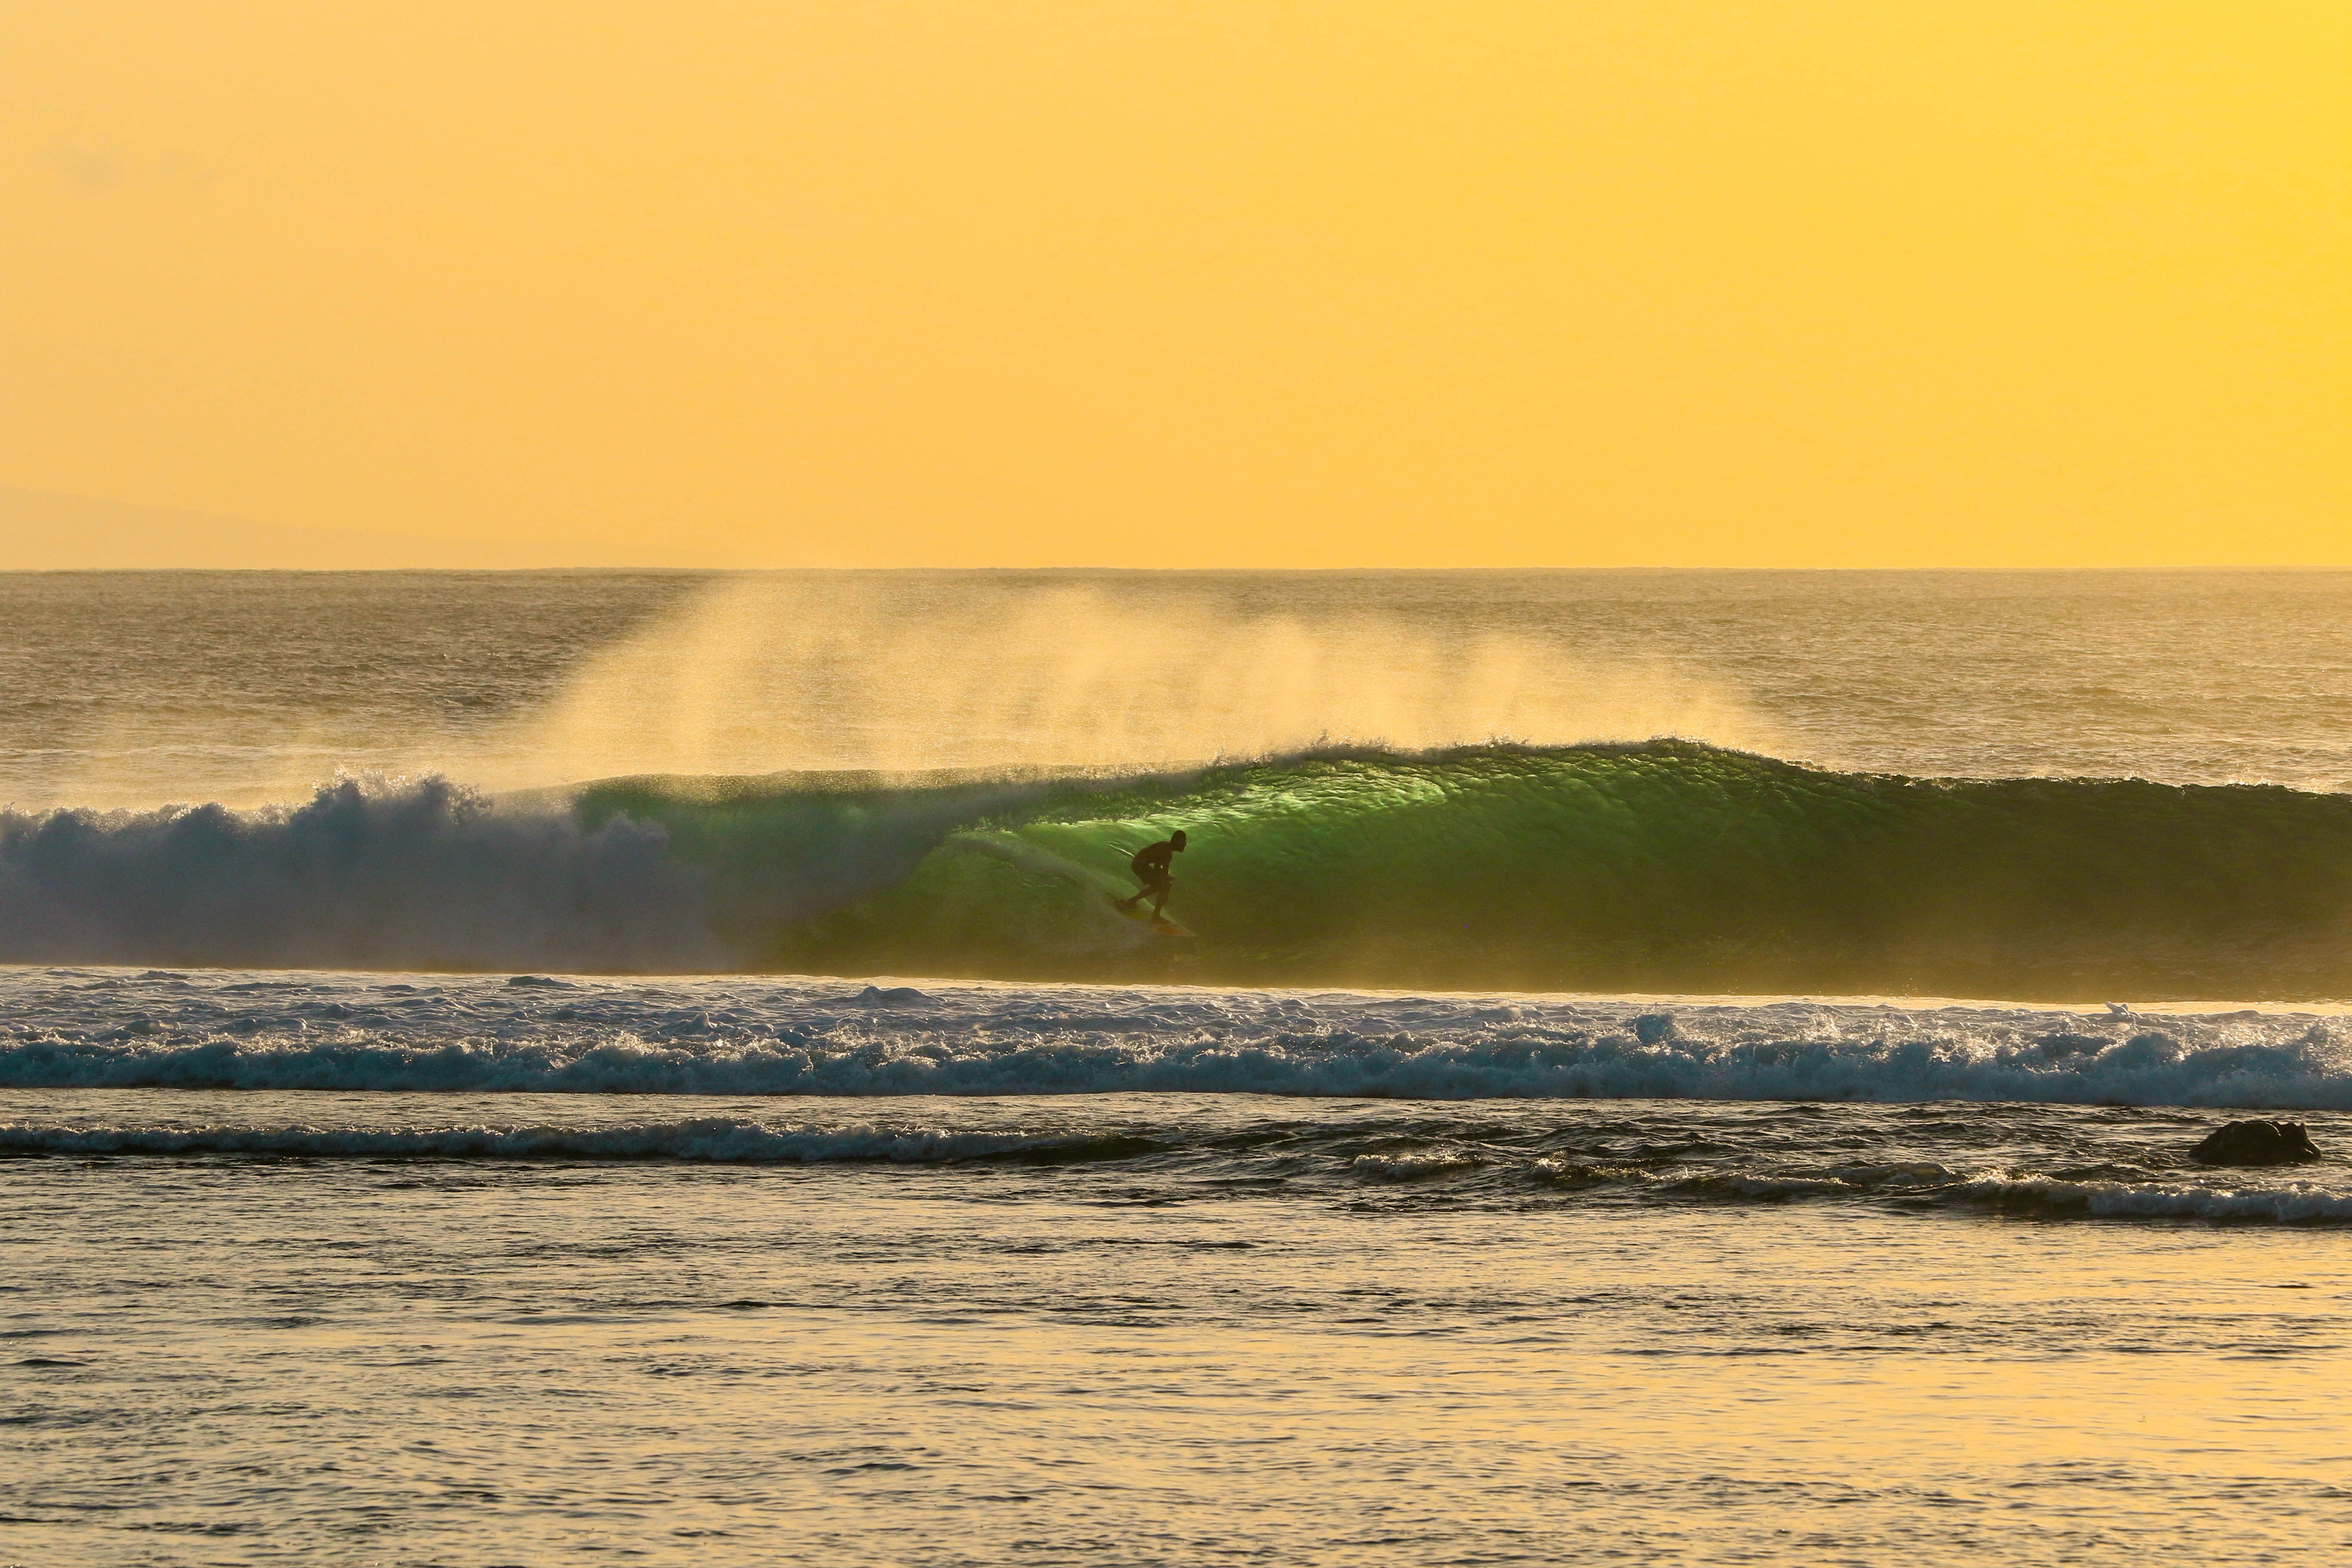 A lone surfer riding a wave against a bright yellow sky in Lombok